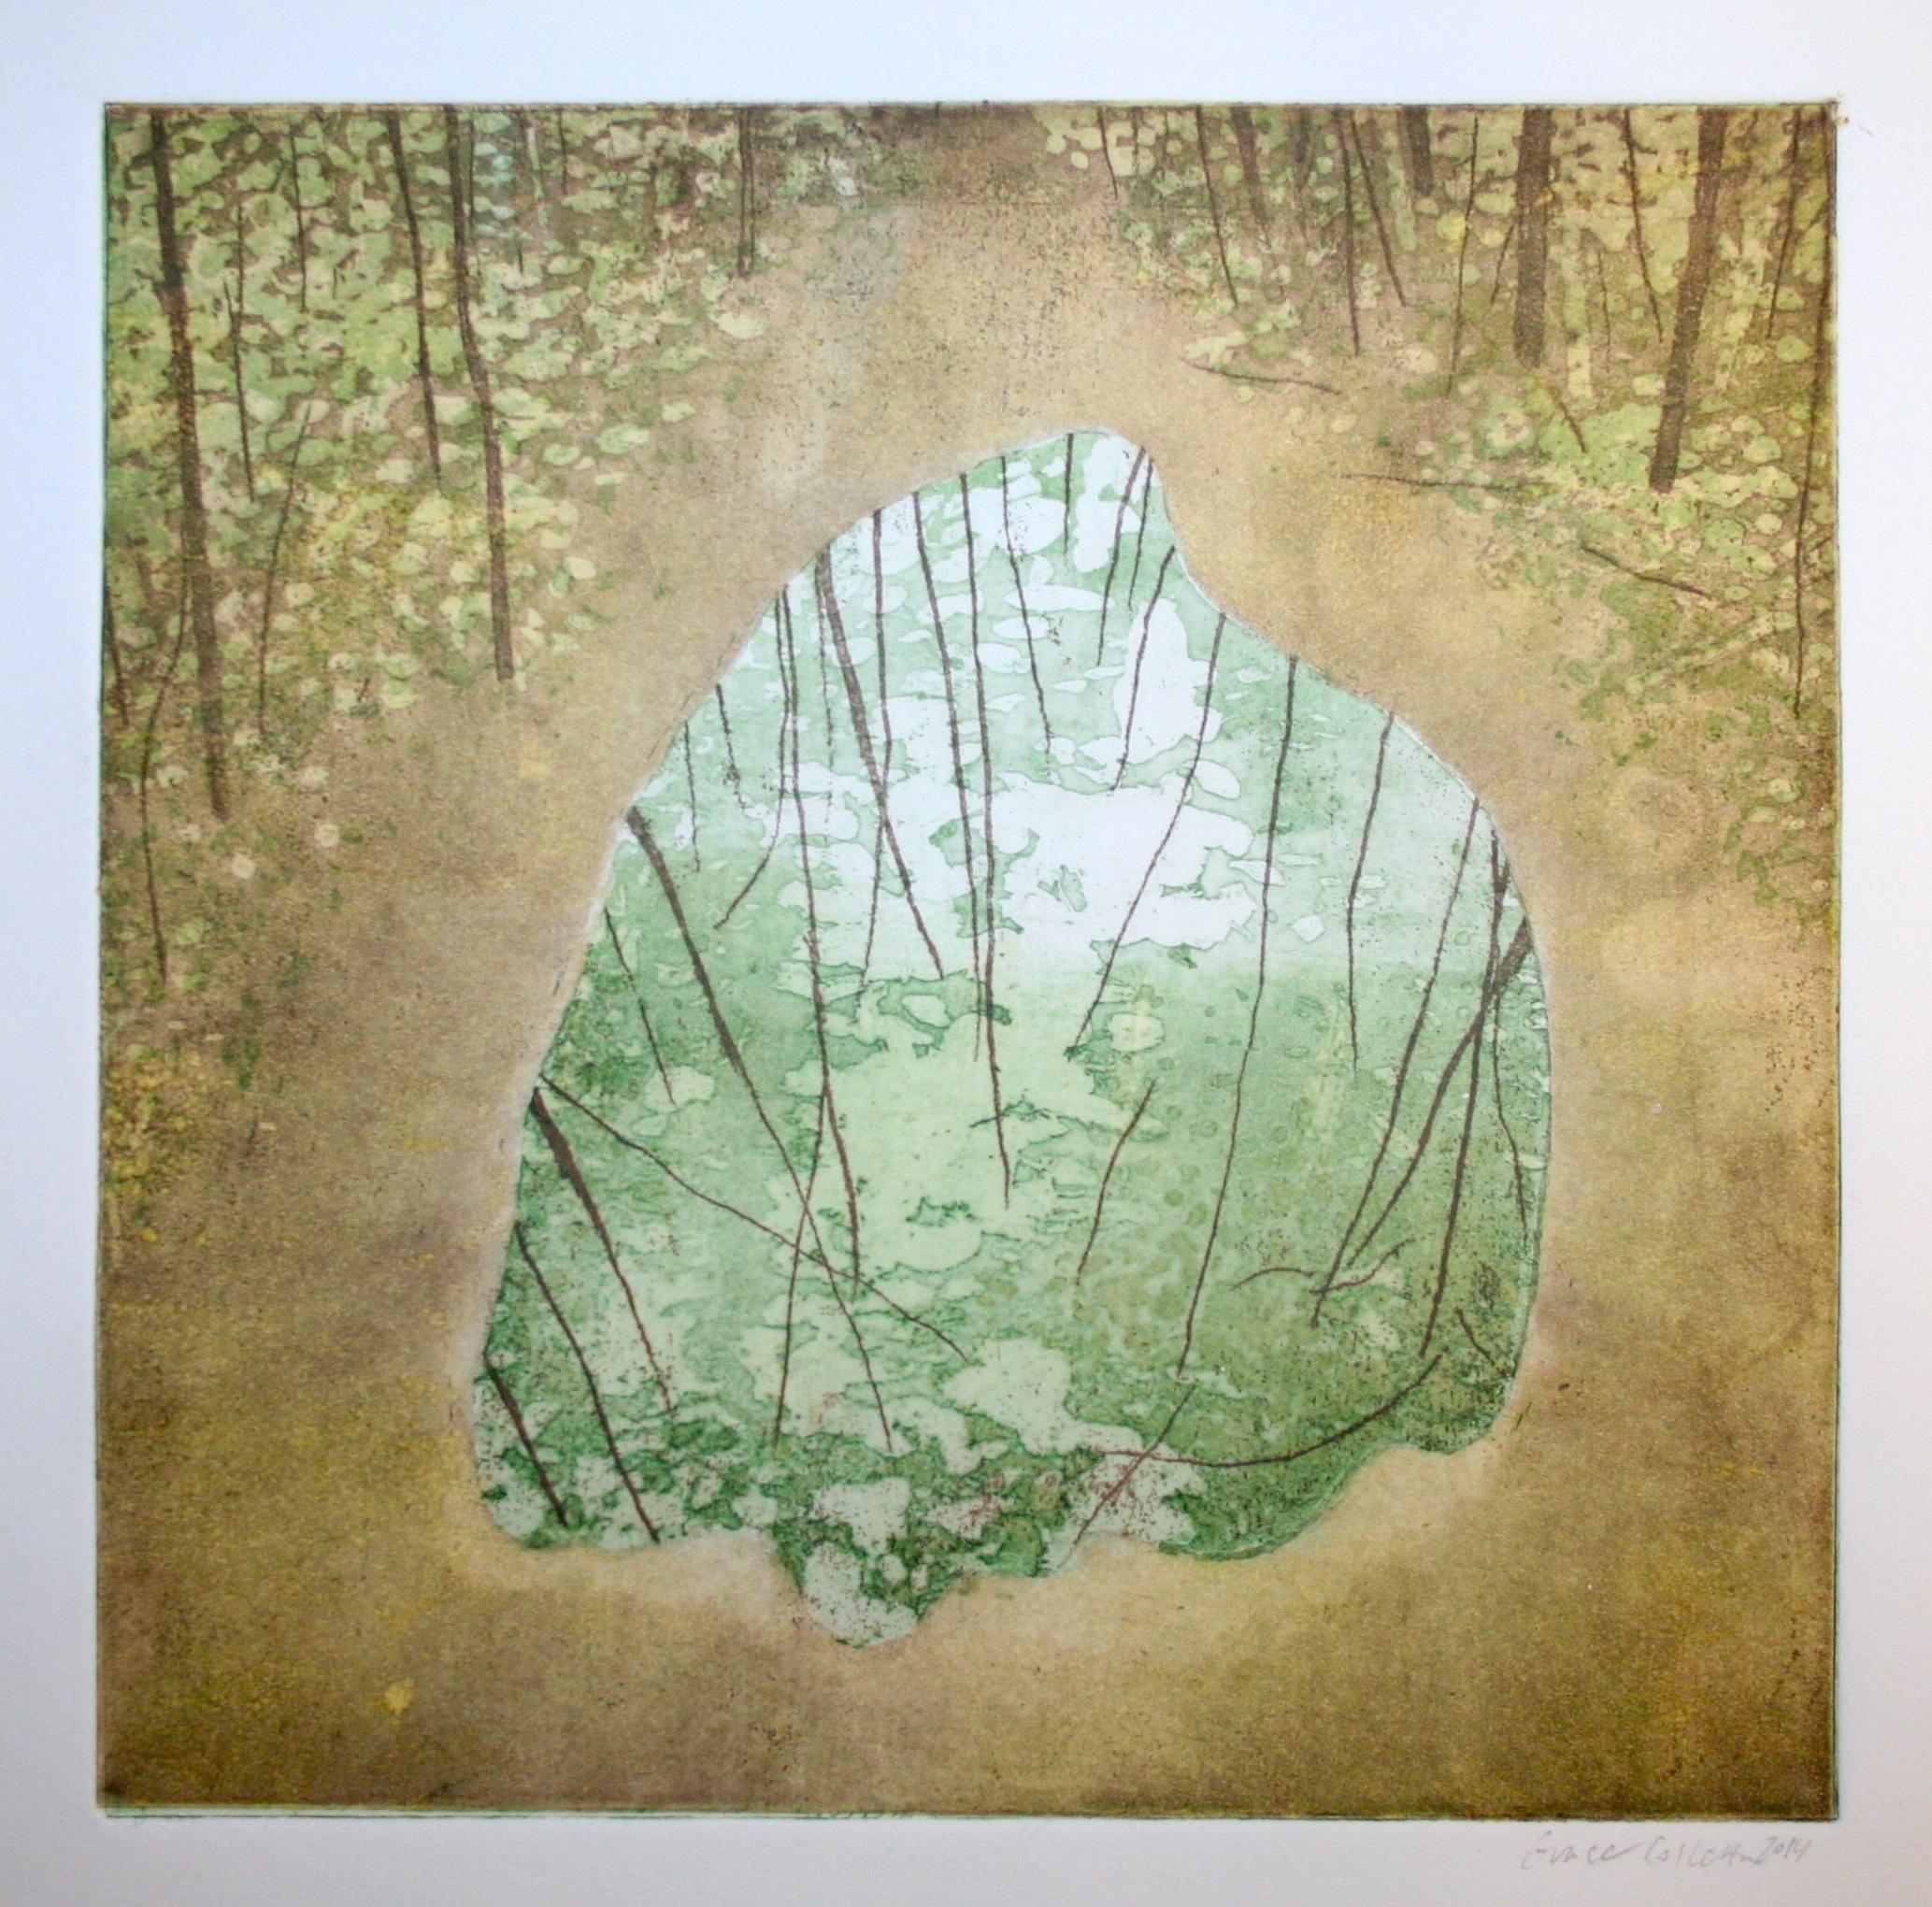 "Forest Mirror ll, Intaglio and Relief print on paper, 9 x 9 "", 2014"